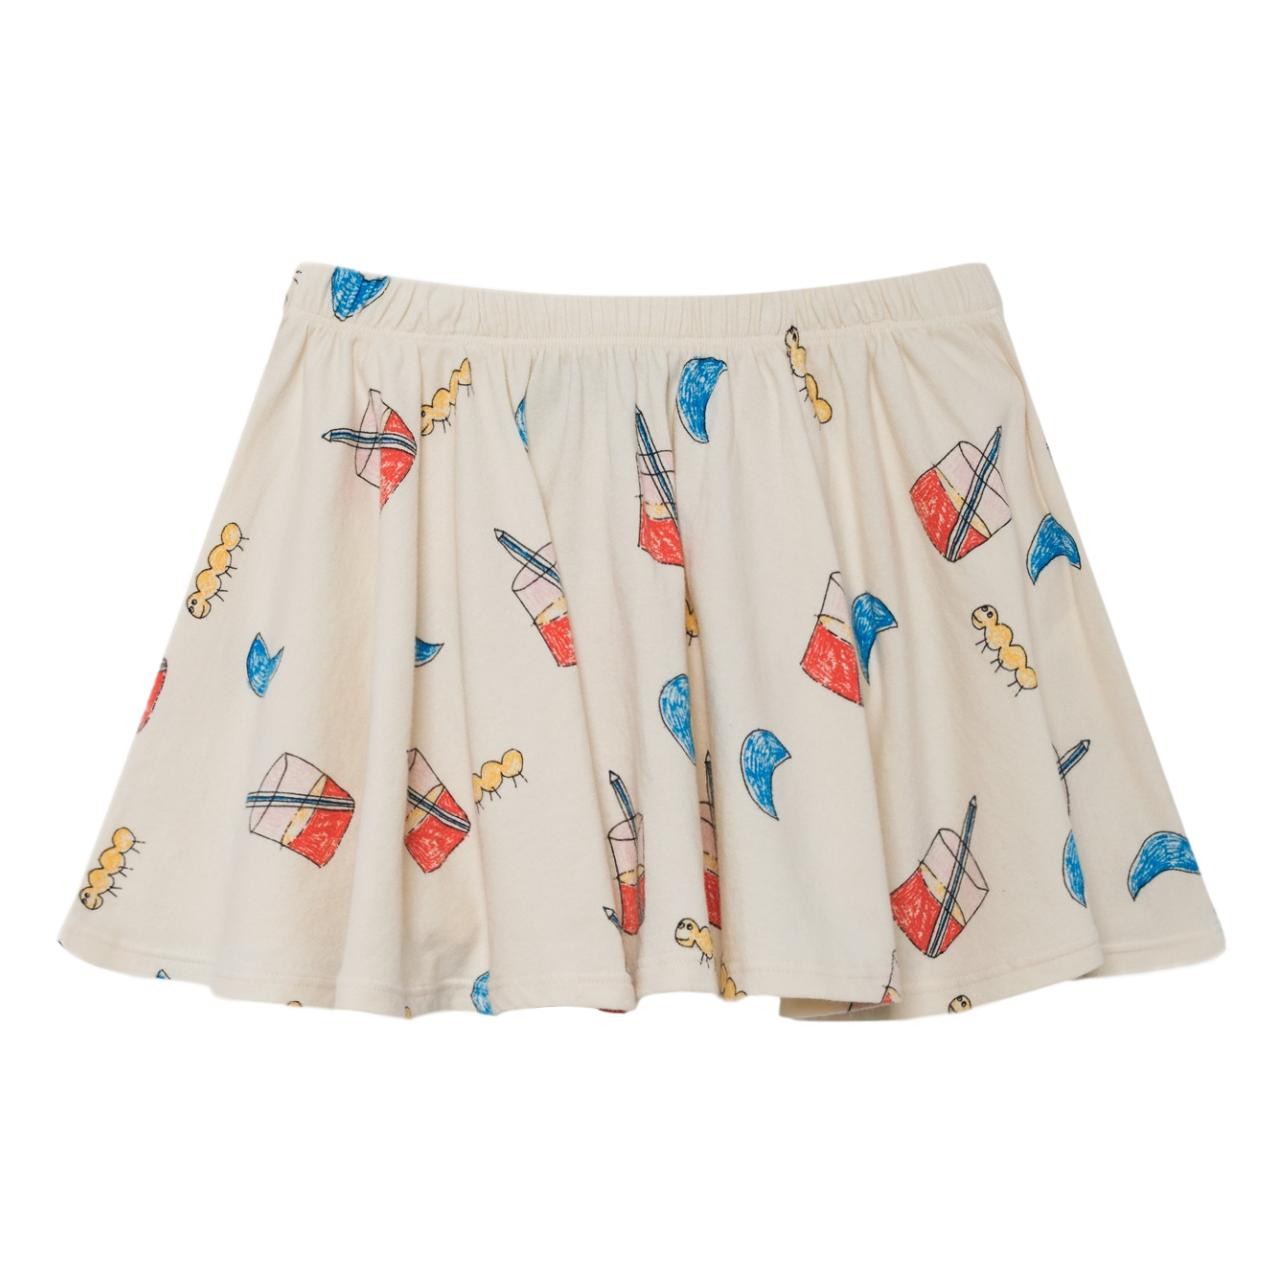 THE ANIMALS OBSERVATORY - Raw White Glasses Pelican Kids Skirt